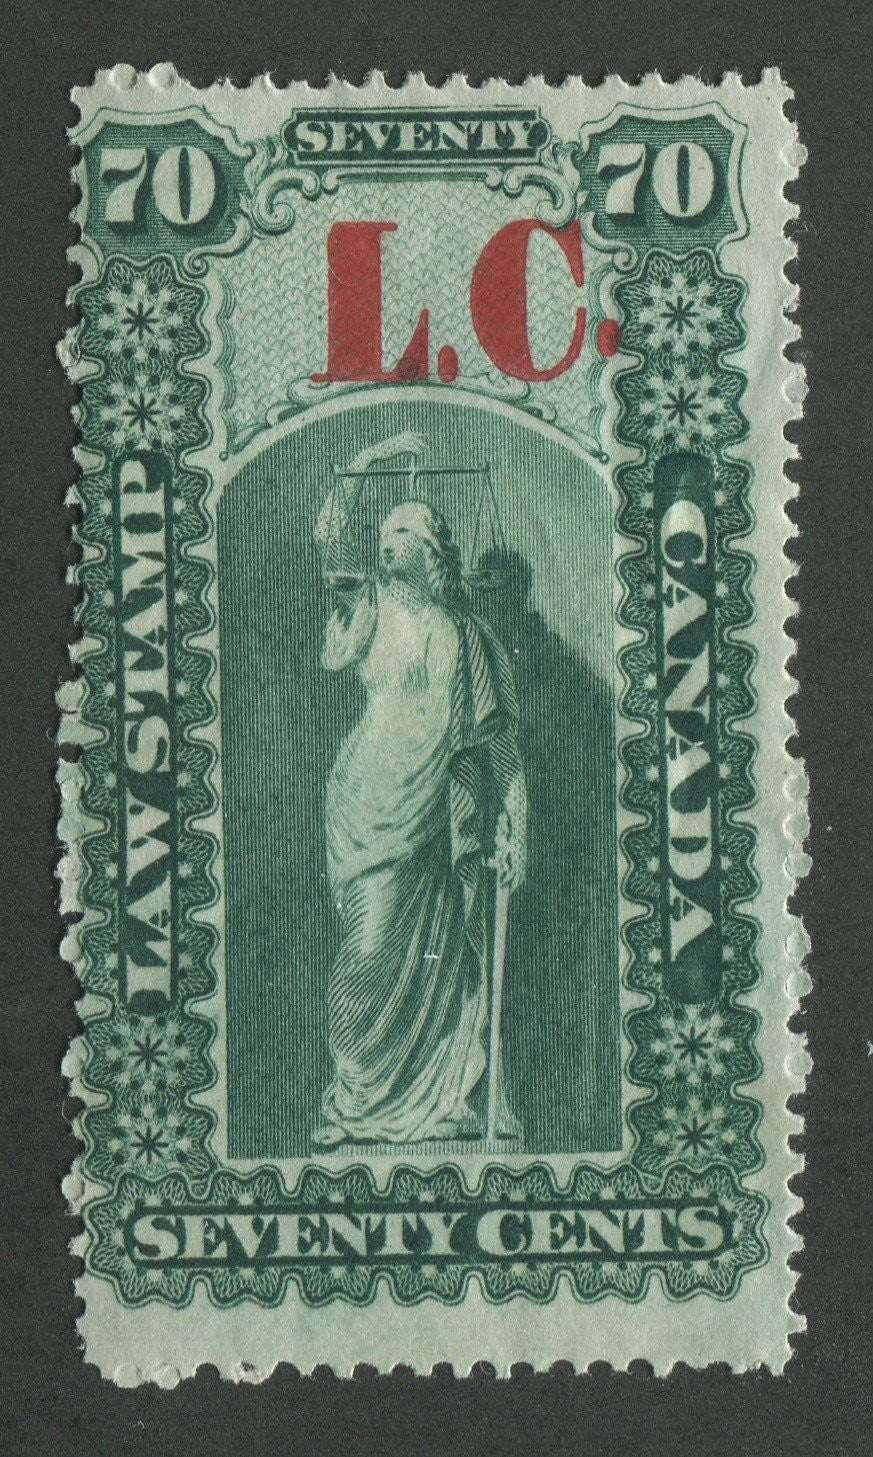 0007QL1707 - QL7 - Mint - UNLISTED - Deveney Stamps Ltd. Canadian Stamps